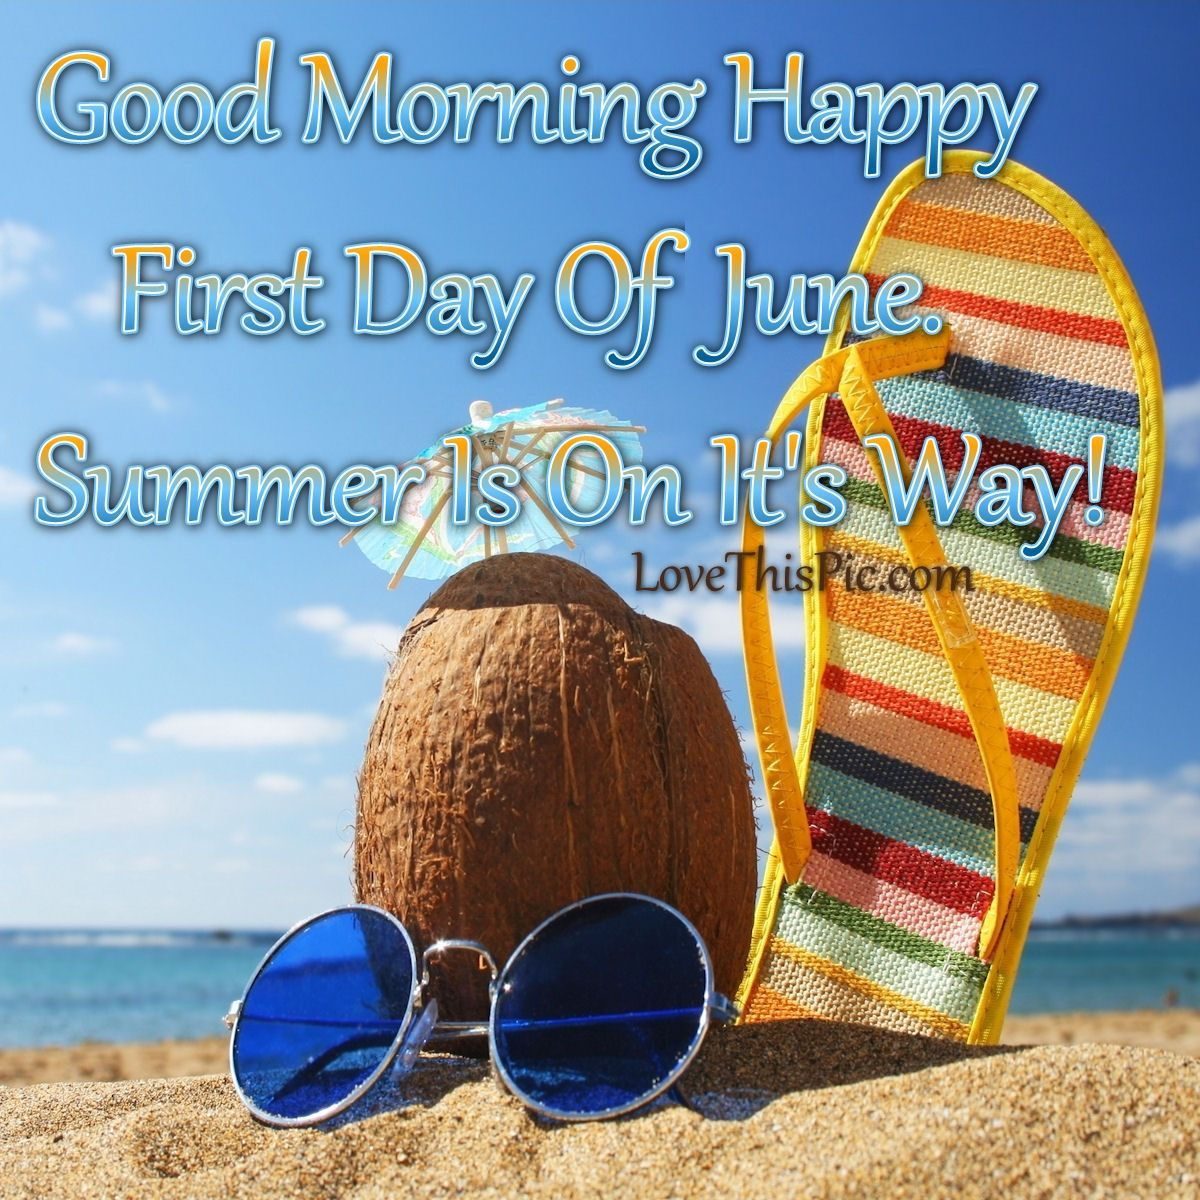 Good Morning Happy First Day Of June Good Morning